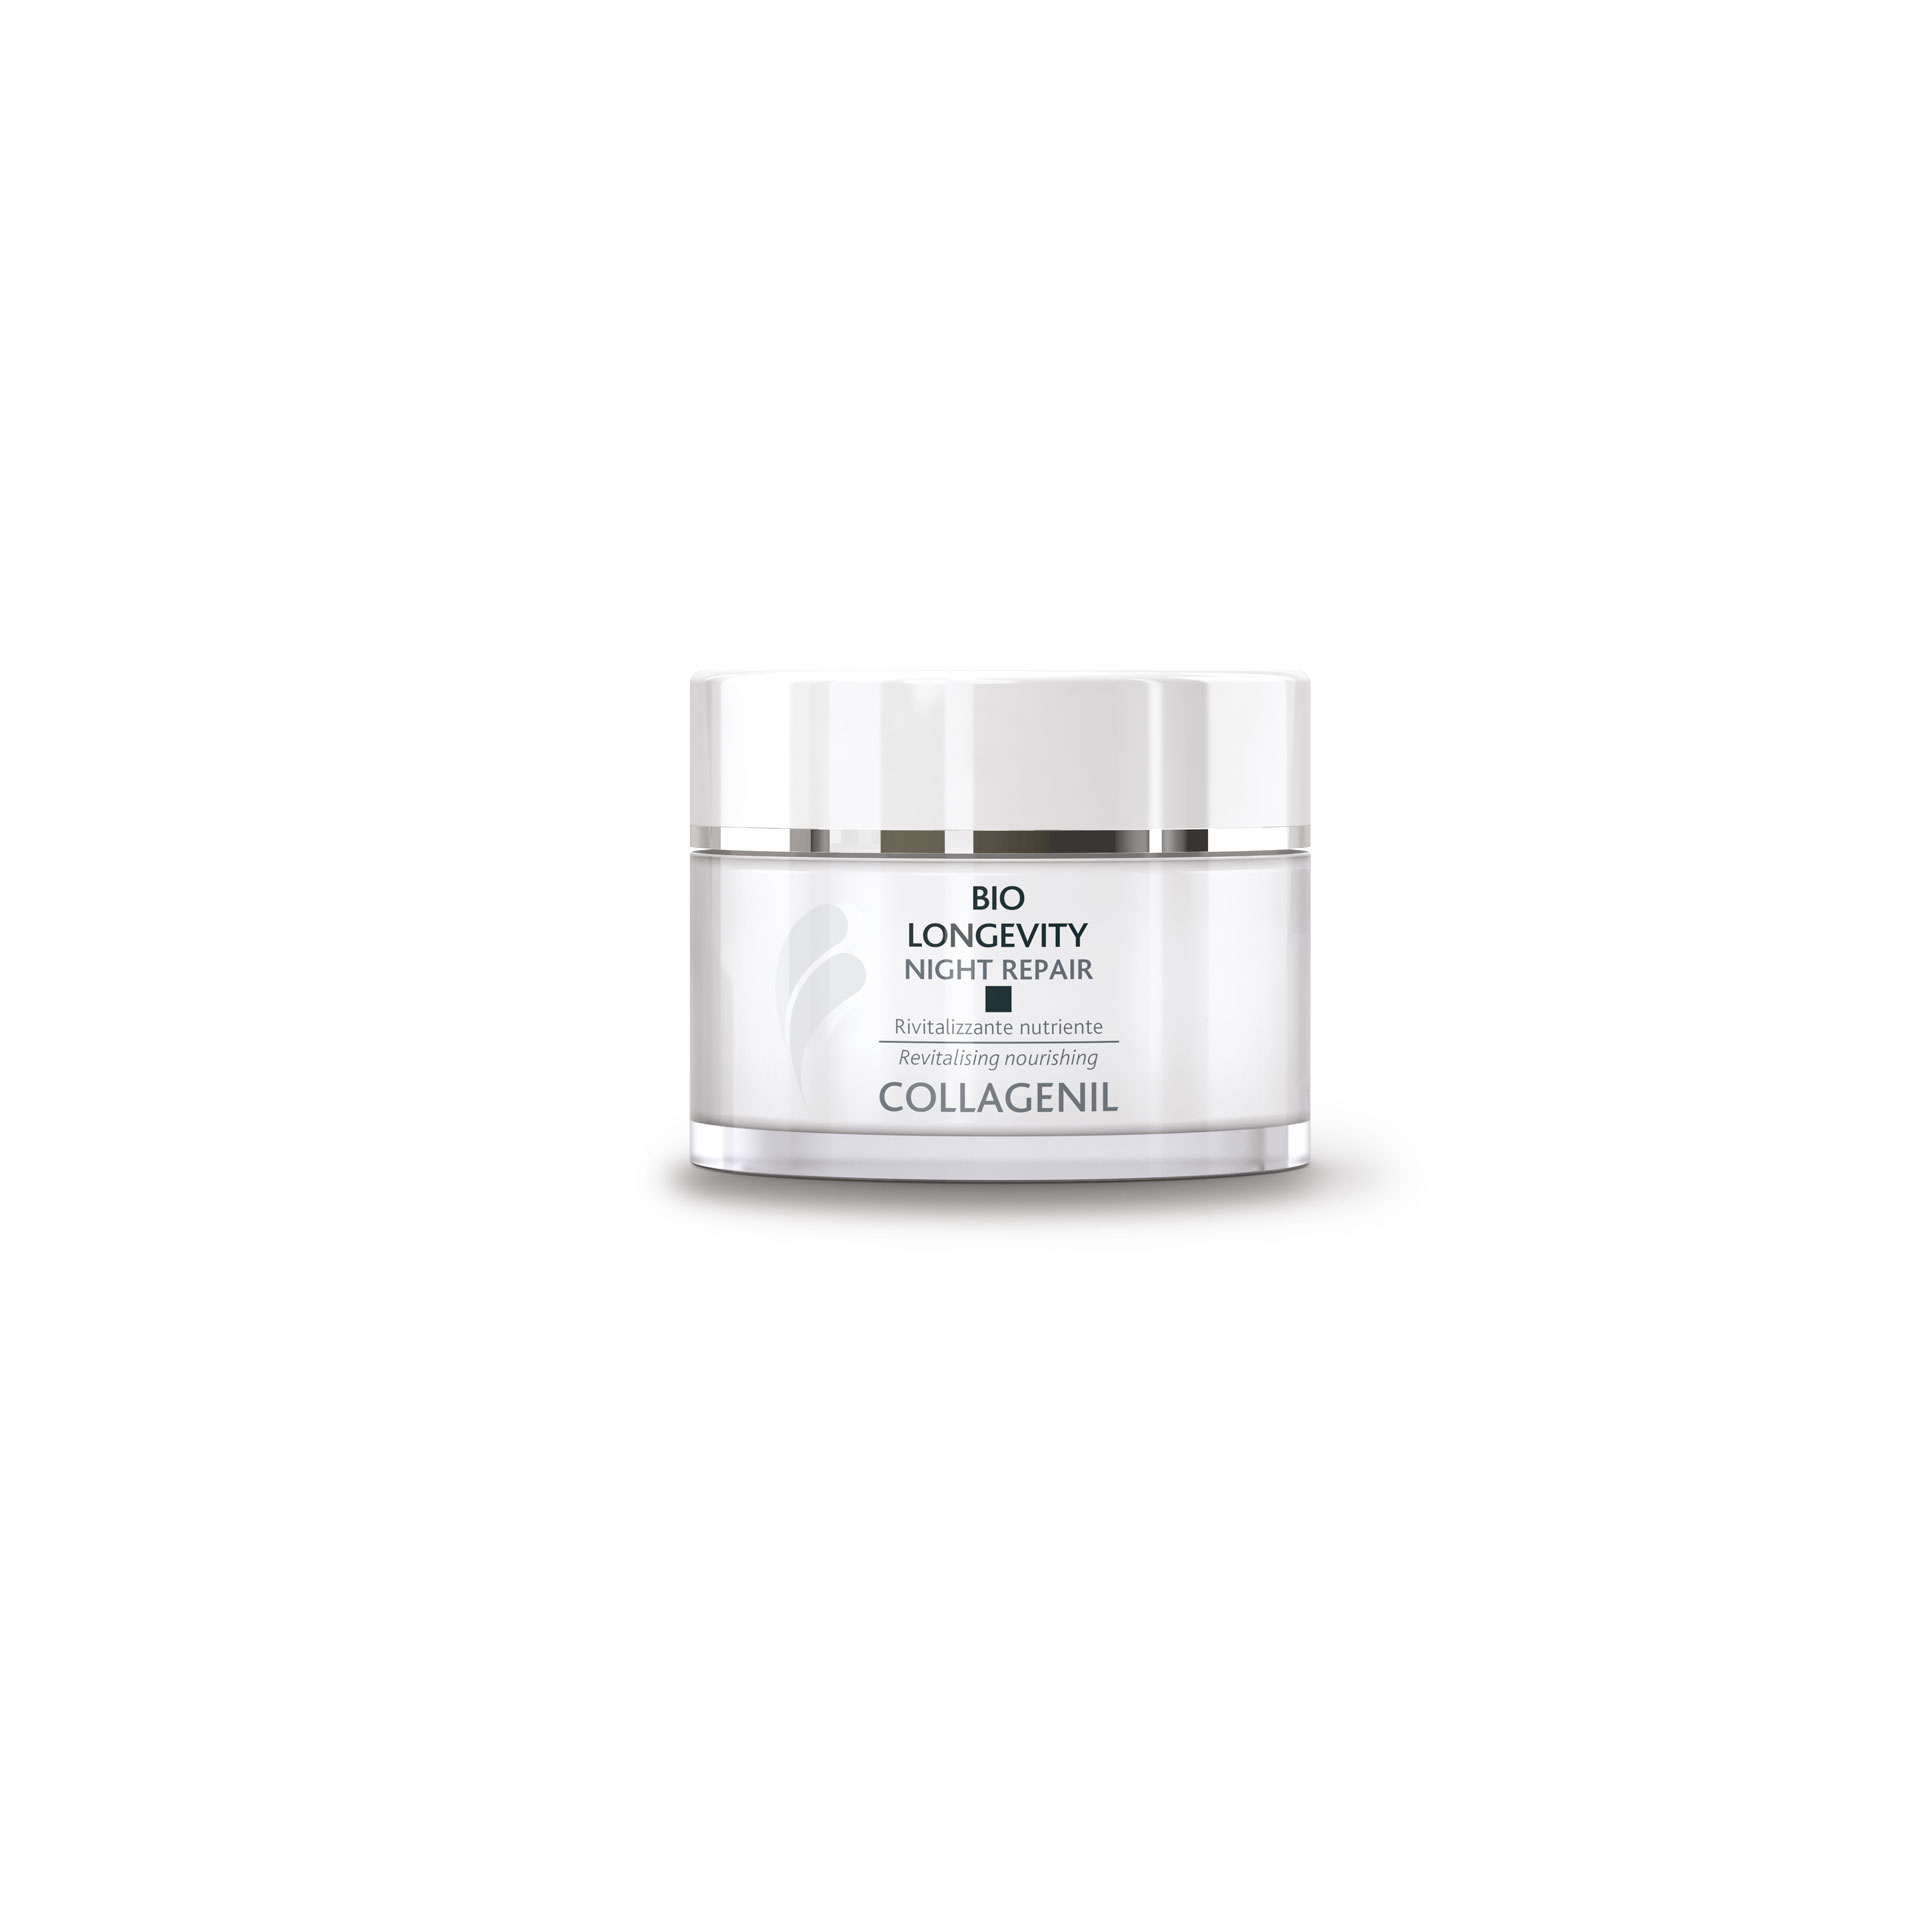 BIO-LONGEVITY - night repair